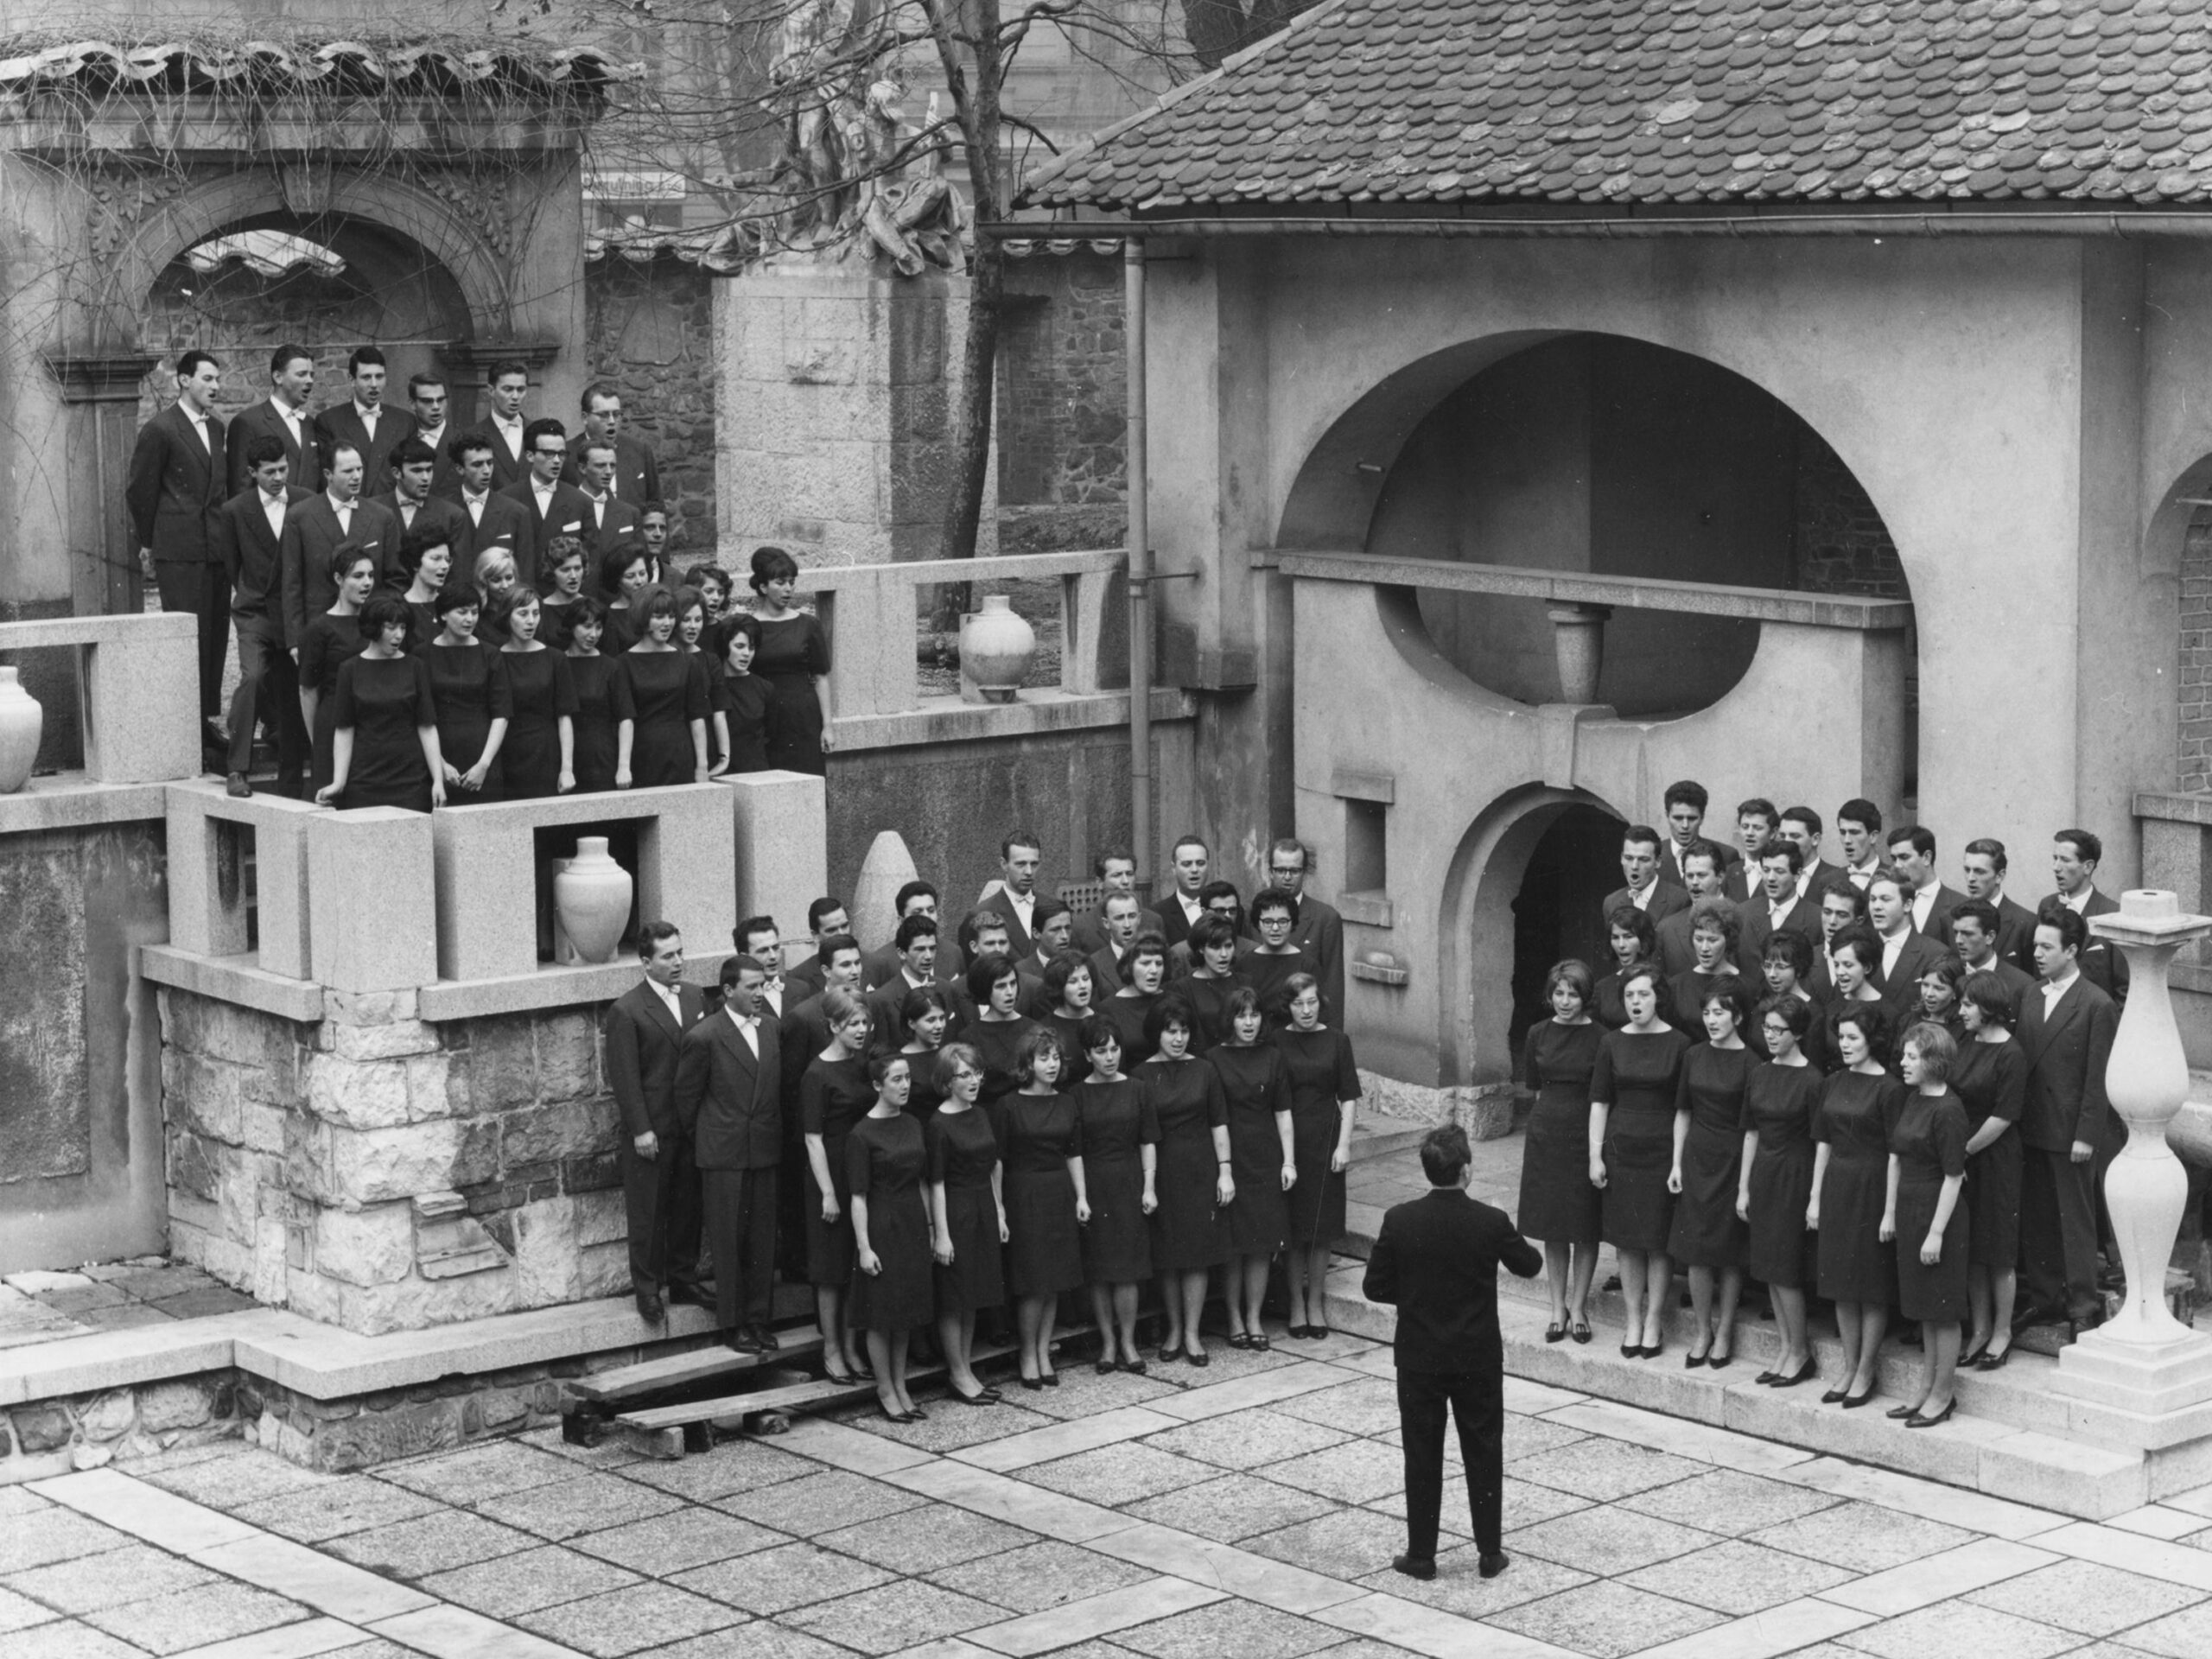 Archives of the Academic Choir Tone Tomšič of the University of Ljubljana, Slovenia: Academic Choir Tone Tomšič and Lojze Lebič, Slovenia - In 1961, composer, conductor, pedagogue and academic writer Lojze Lebič took over the leadership of the famous Academic Choir Tone Tomšič from Ljubljana. The photograph depicts the choir while performing at the Križanke Summer Theatre sometime between 1960 and 1970.